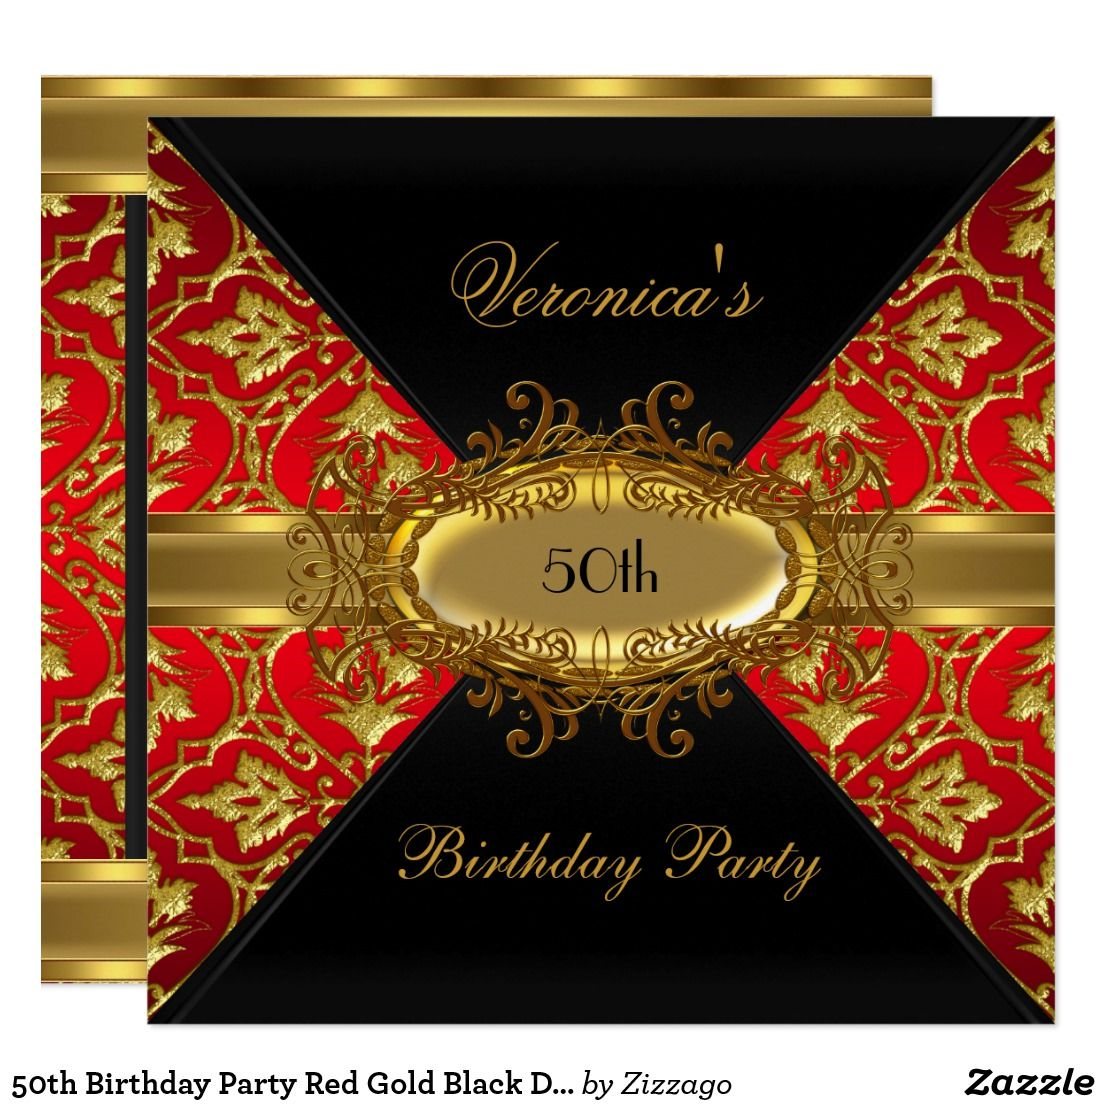 50th birthday party red gold black damask invite in 2018 happy